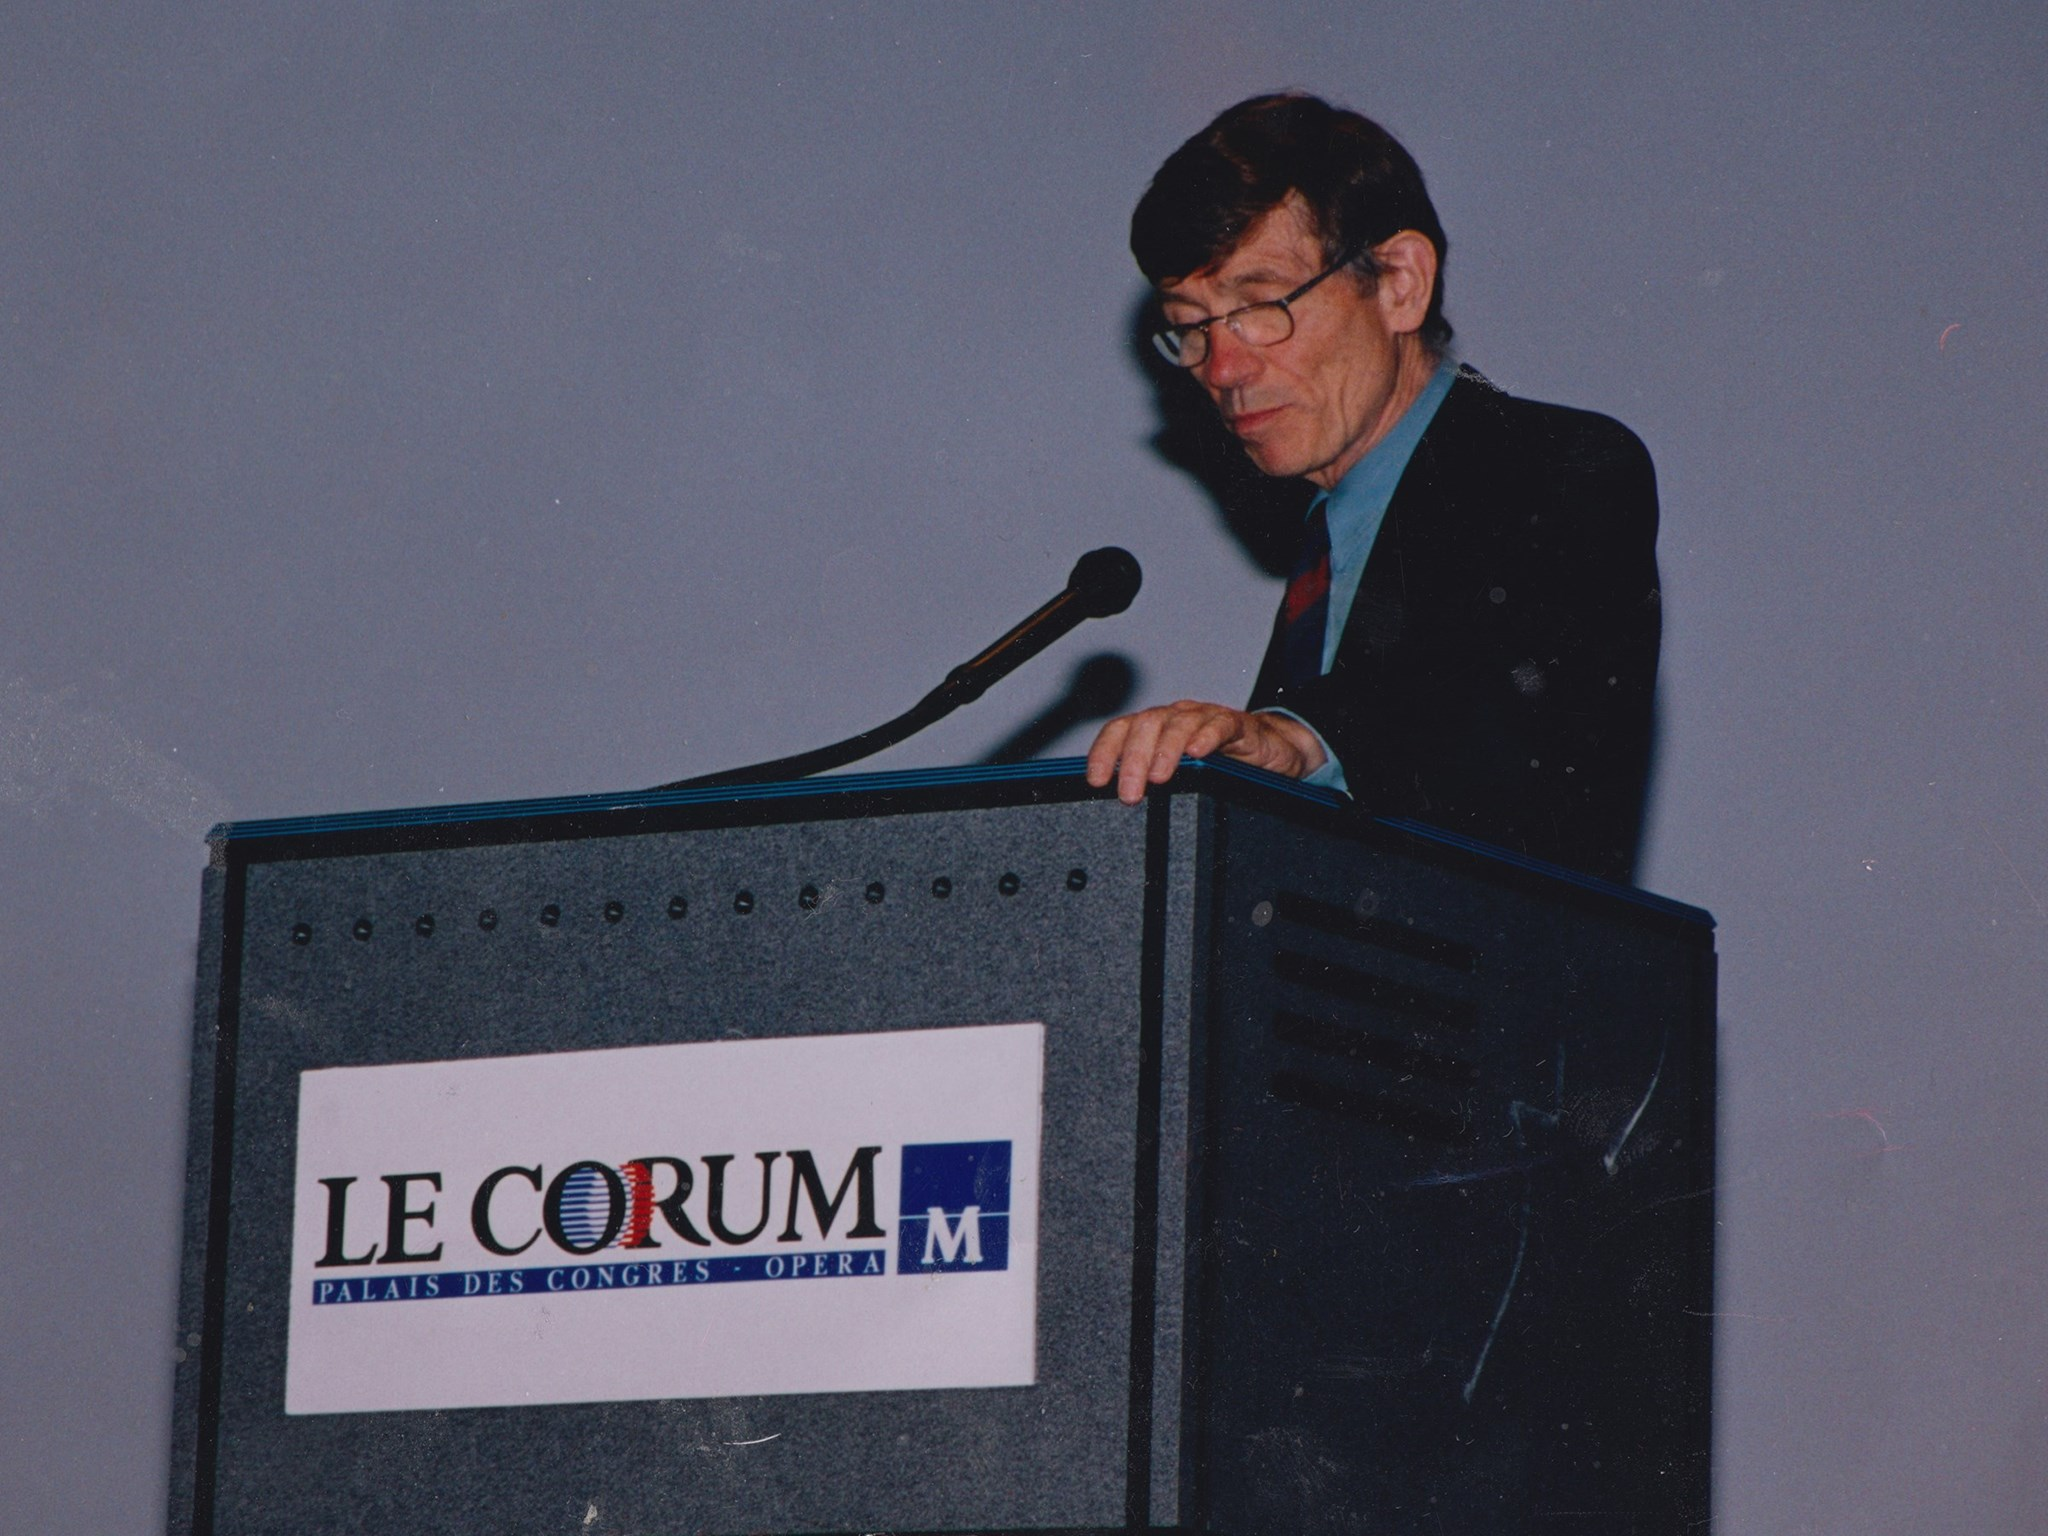 lecture in Montpellier late 80s or early 90s